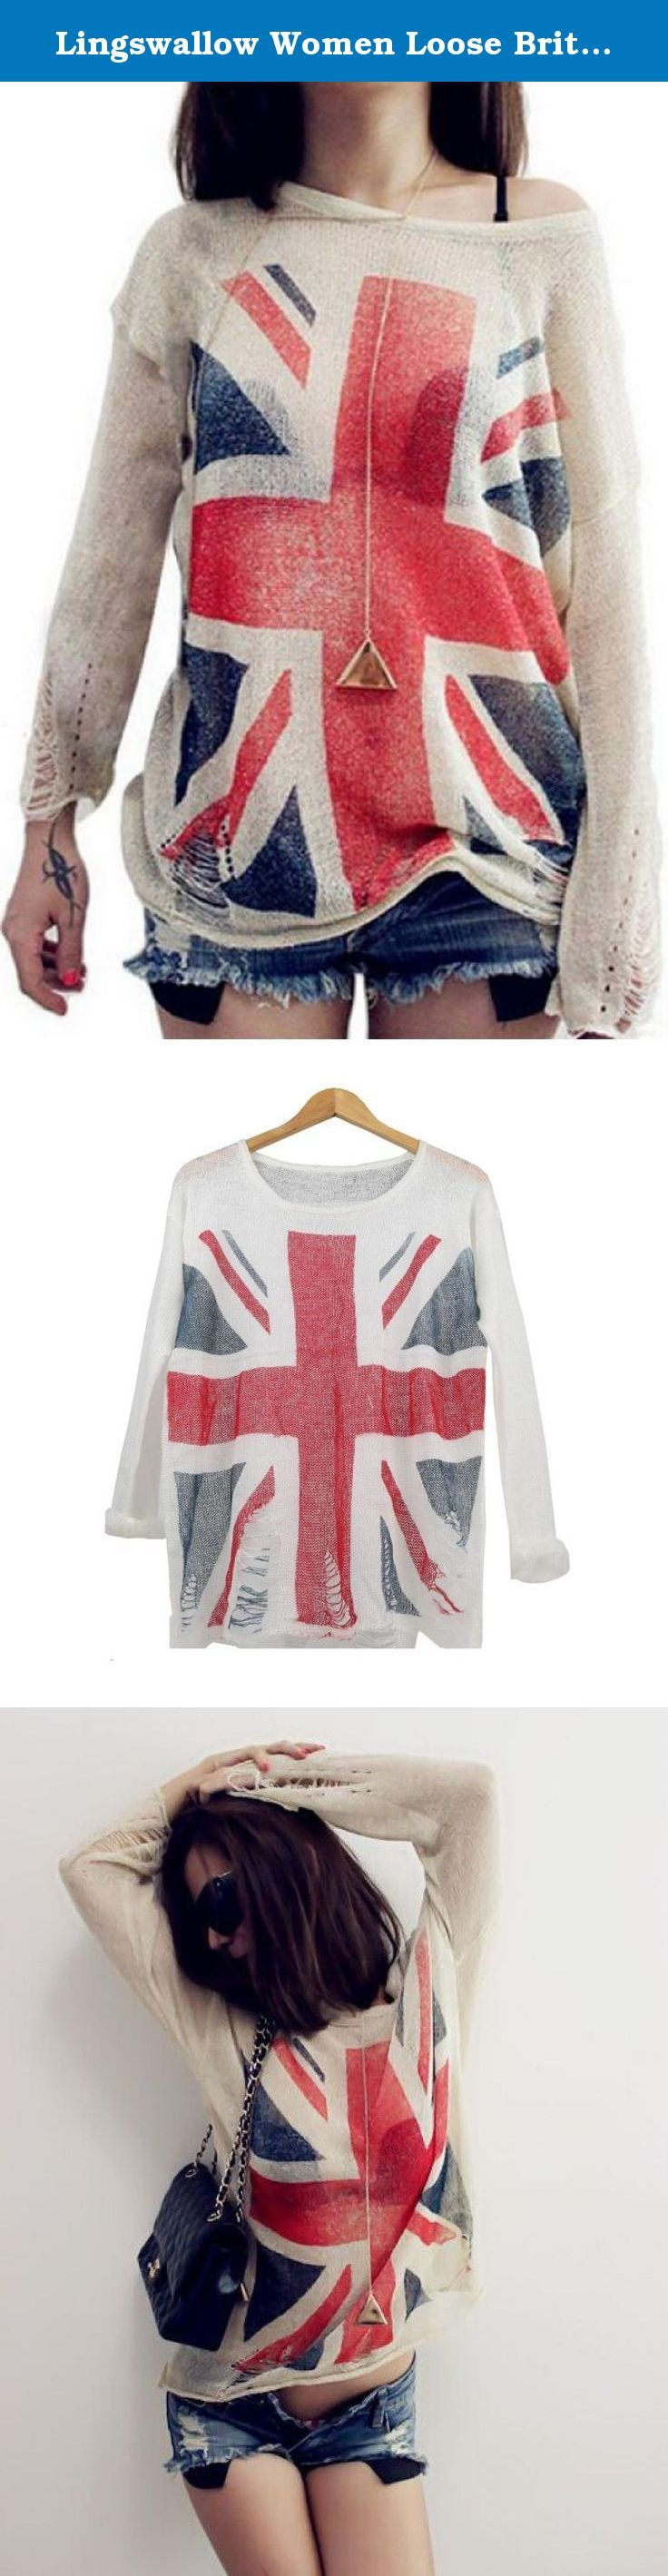 Lingswallow Women Loose British Flag Print Frayed Jumper Knit Sweater Free Black. Material:Cotton, Type:Knit Sweater, Color:Naked Apricot,White,Black, Pattern:British Flag Printing, Length(cm):68, Chest Width(cm):53, Sleeve Length(cm):50.